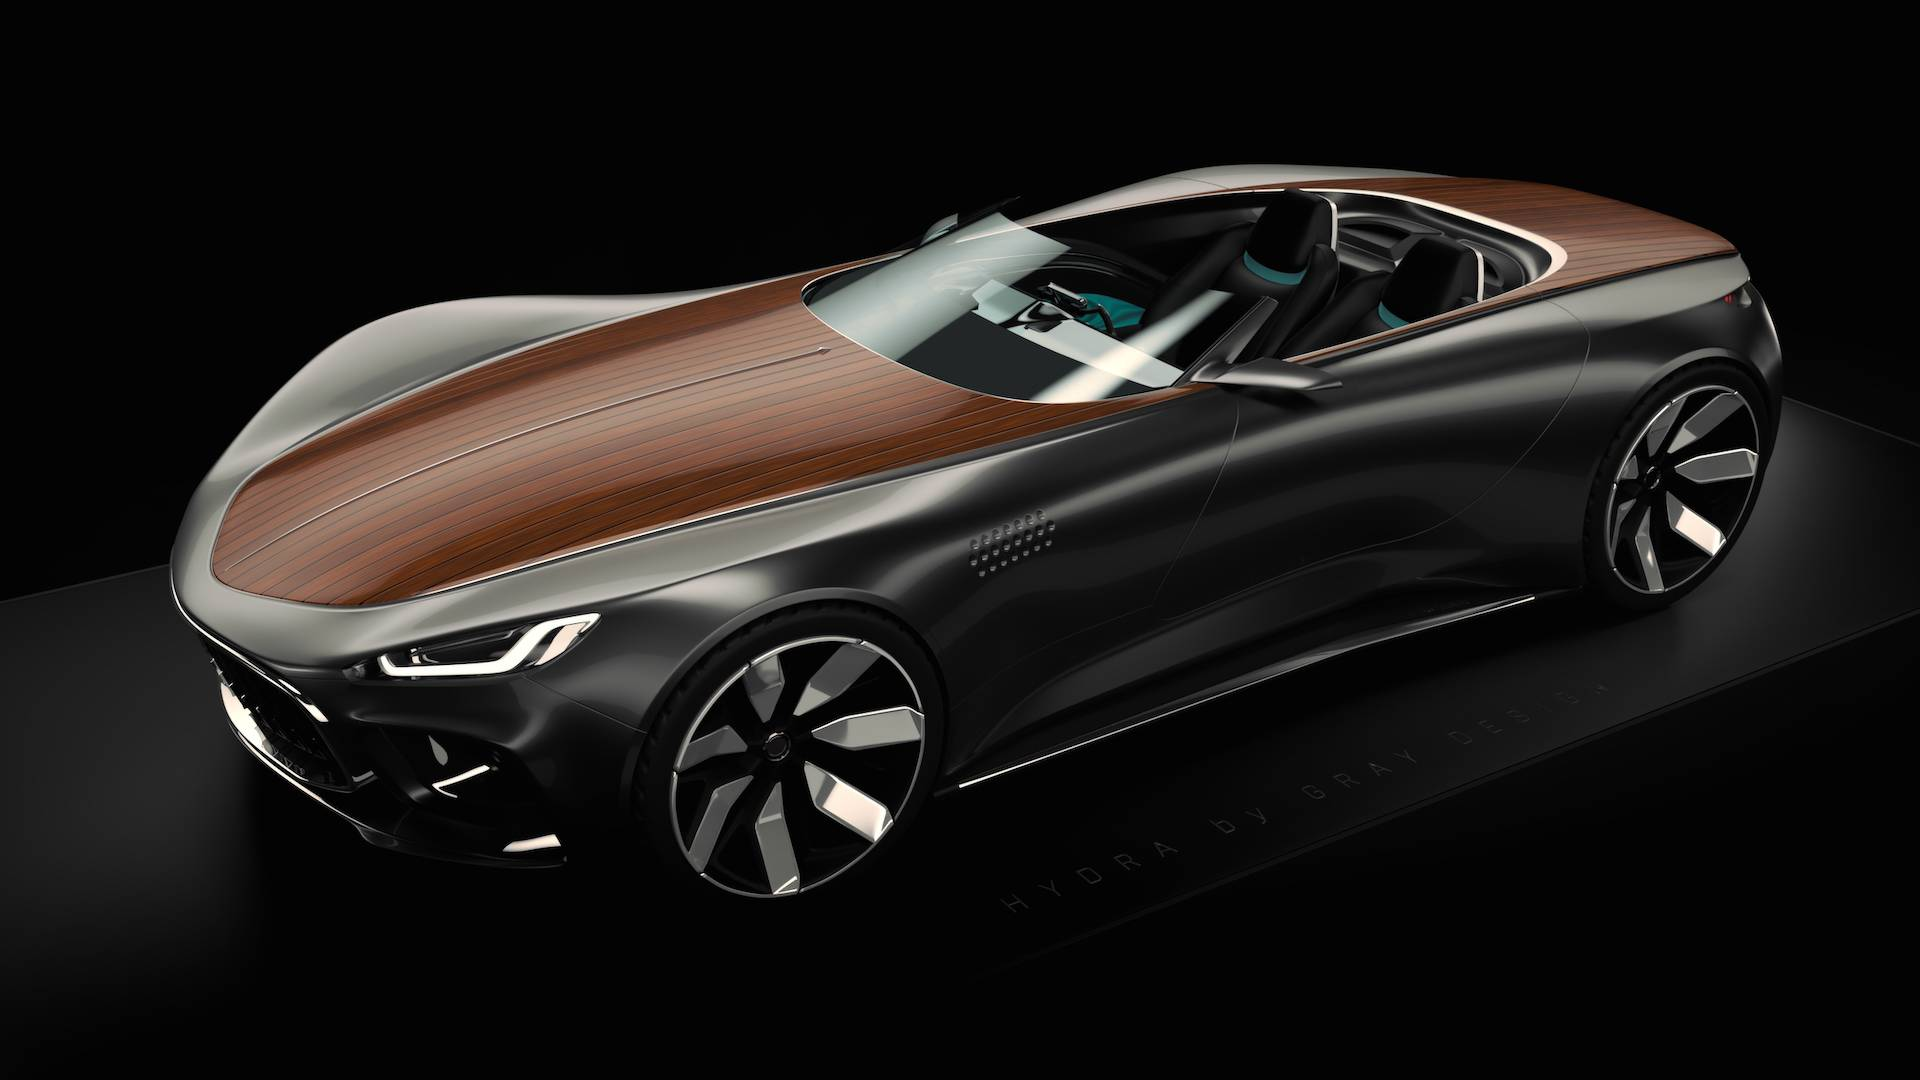 gray-design-proposes-a-meeting-of-ages-in-woody-supercar-3